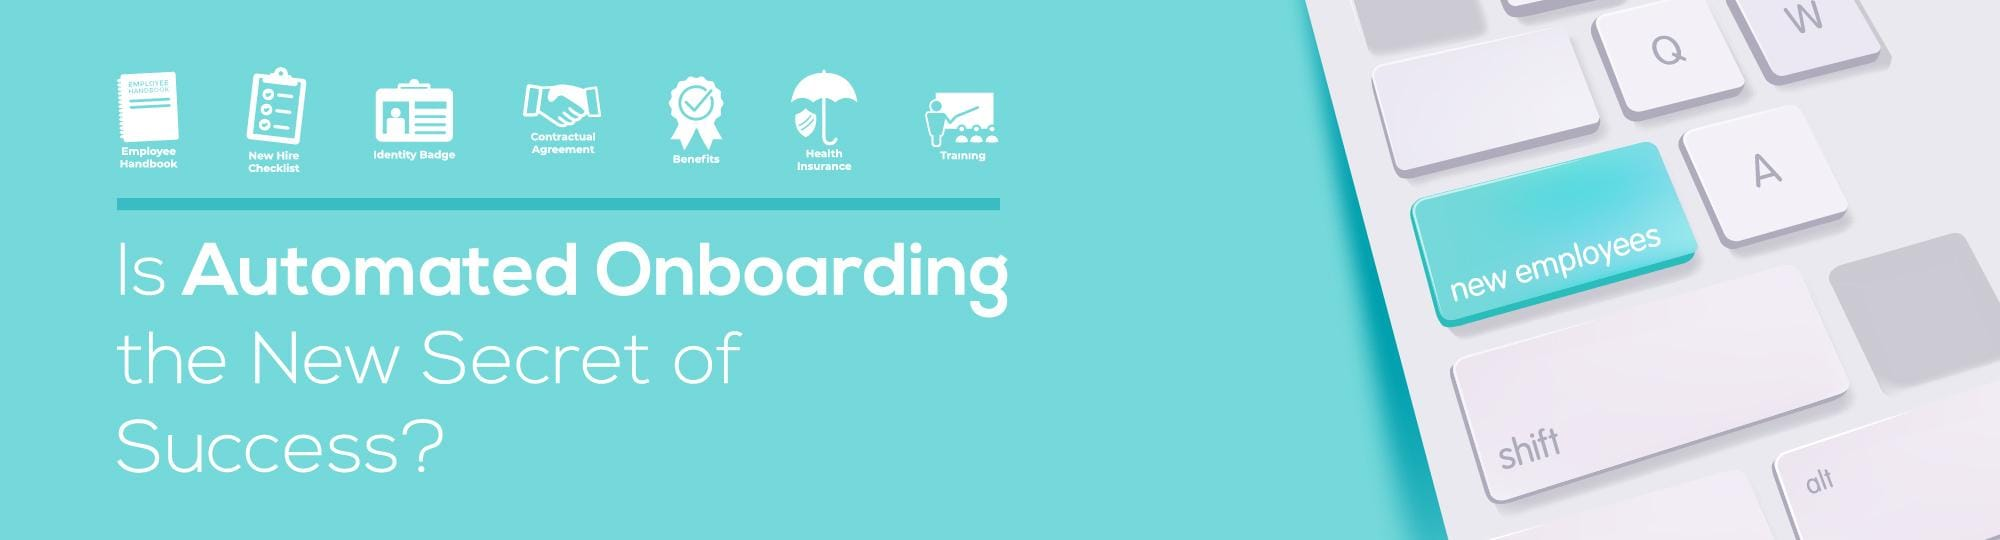 Understanding Automated Onboarding Processes